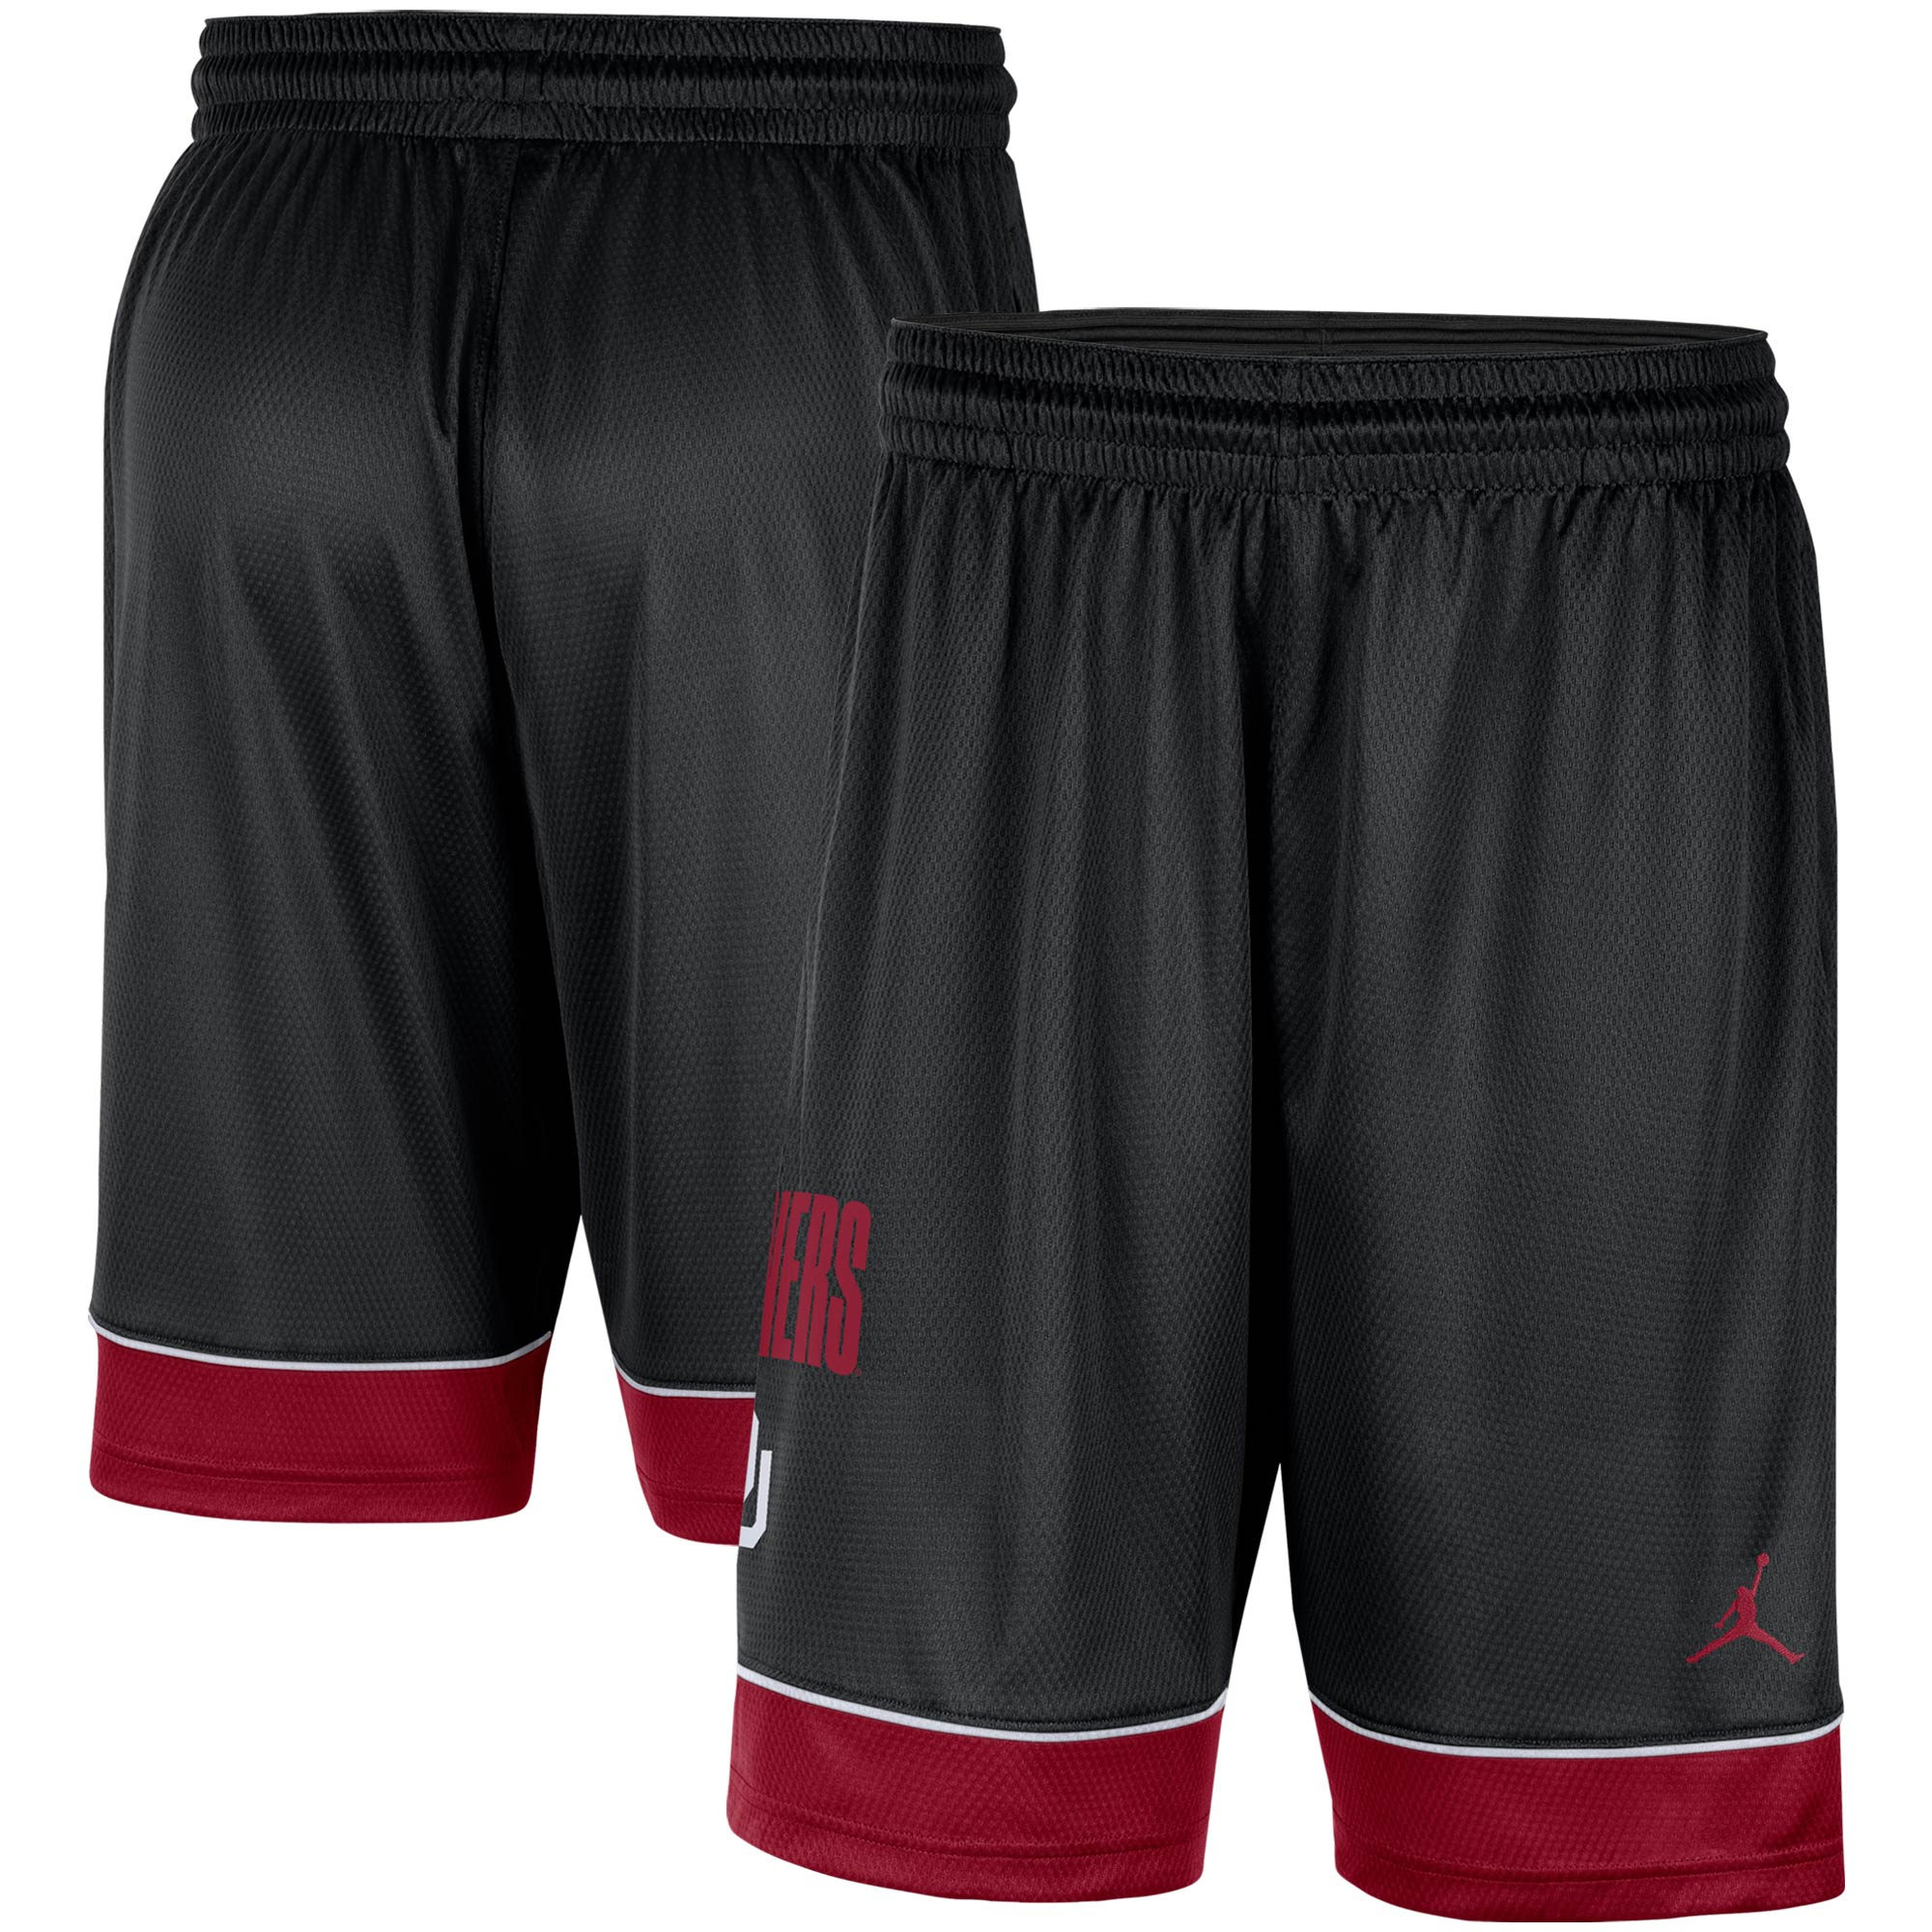 Oklahoma Sooners Jordan Brand Fast Break Shorts - Black